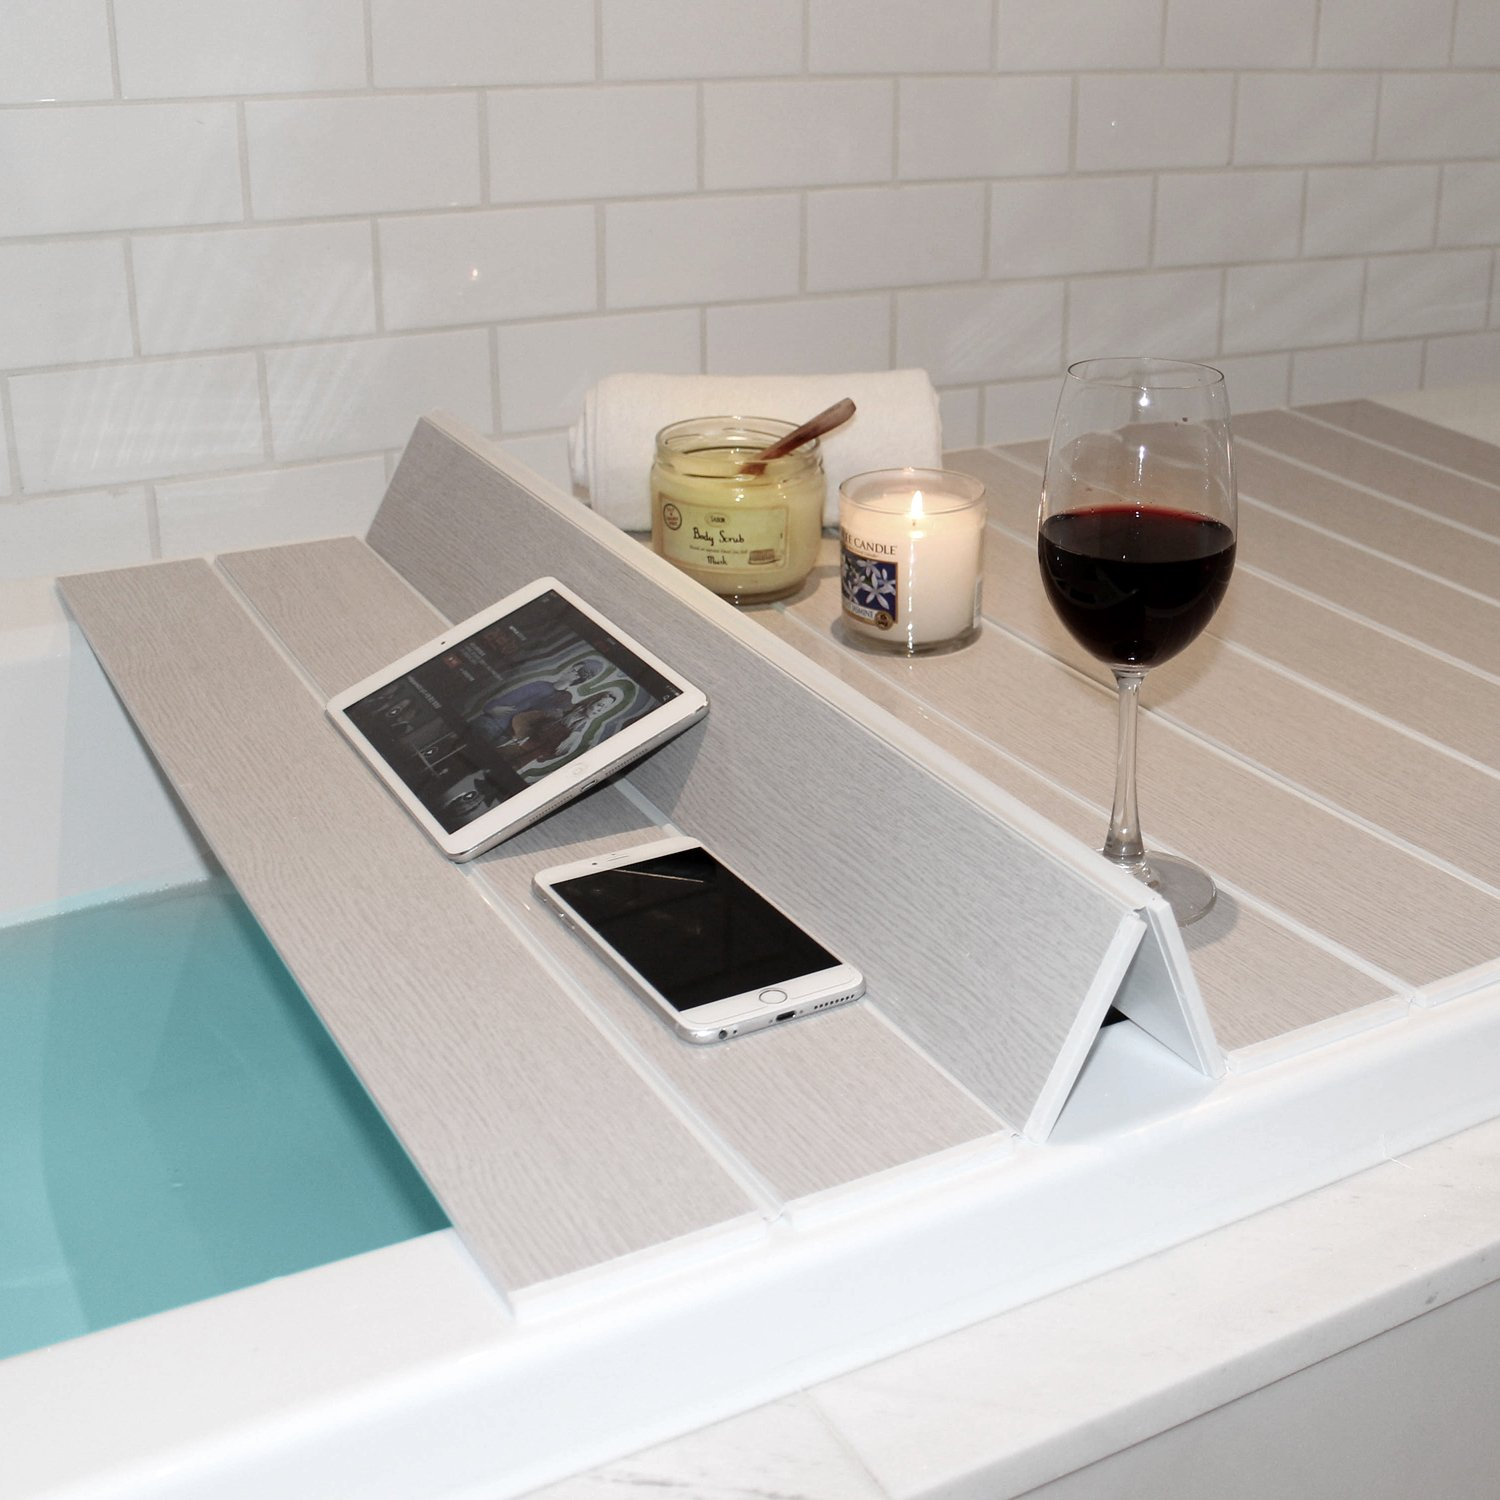 Mia home Folding Bathtub Tray, Good for Keeping Water Hot, Foldable ...